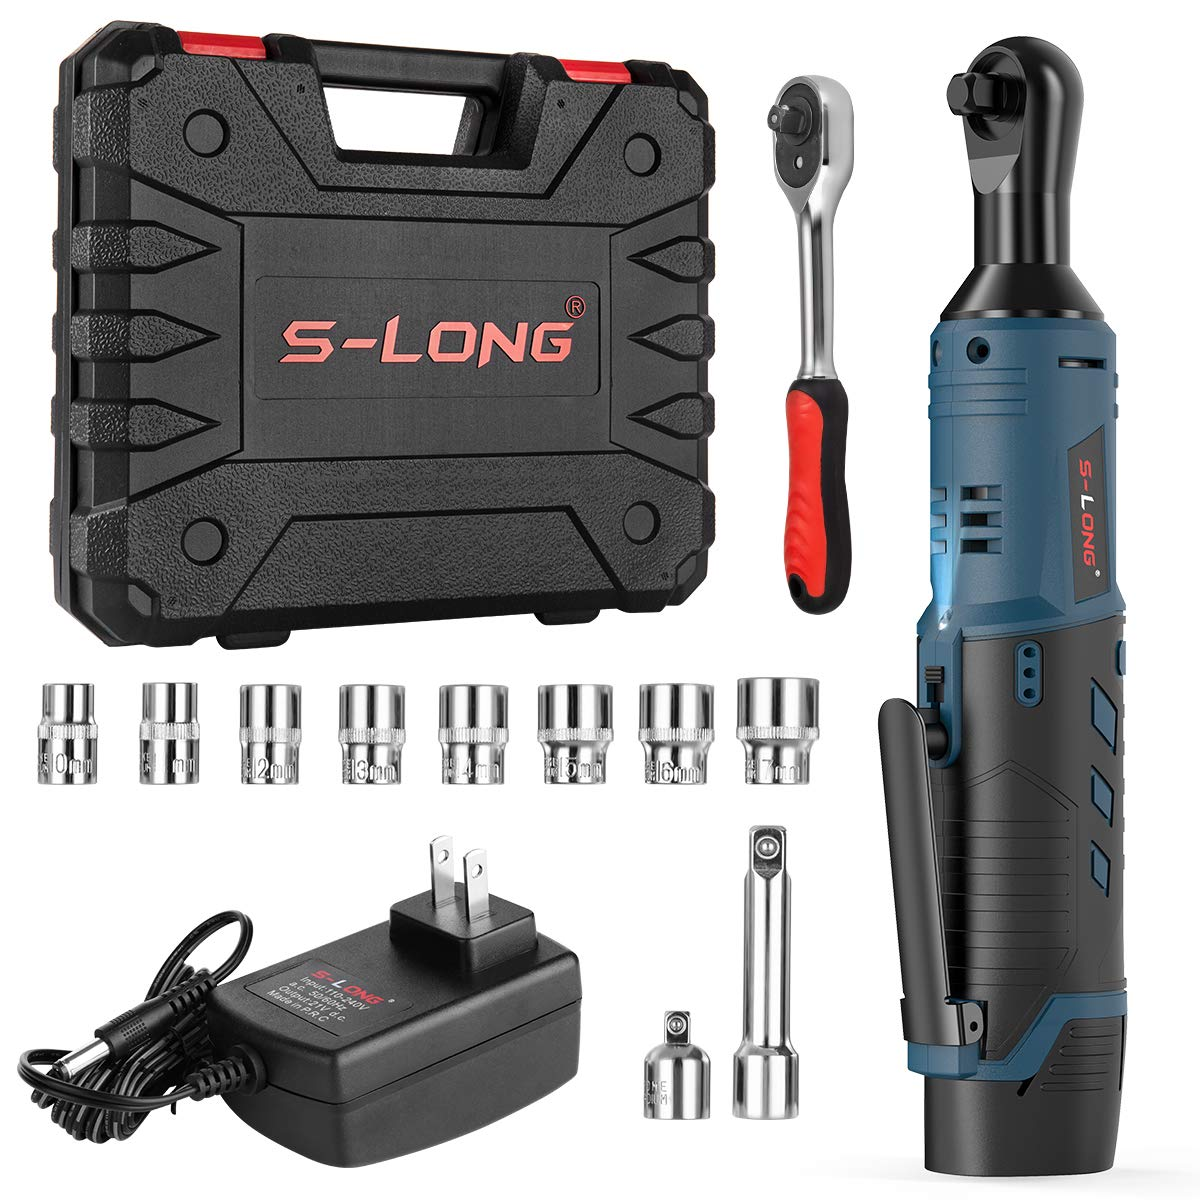 S-LONG 3 8 Cordless Ratchet Wrench 12V Power Electric Wrench Driver With 10 Sockets 2000mAh Lithium-Ion Battery And Charger